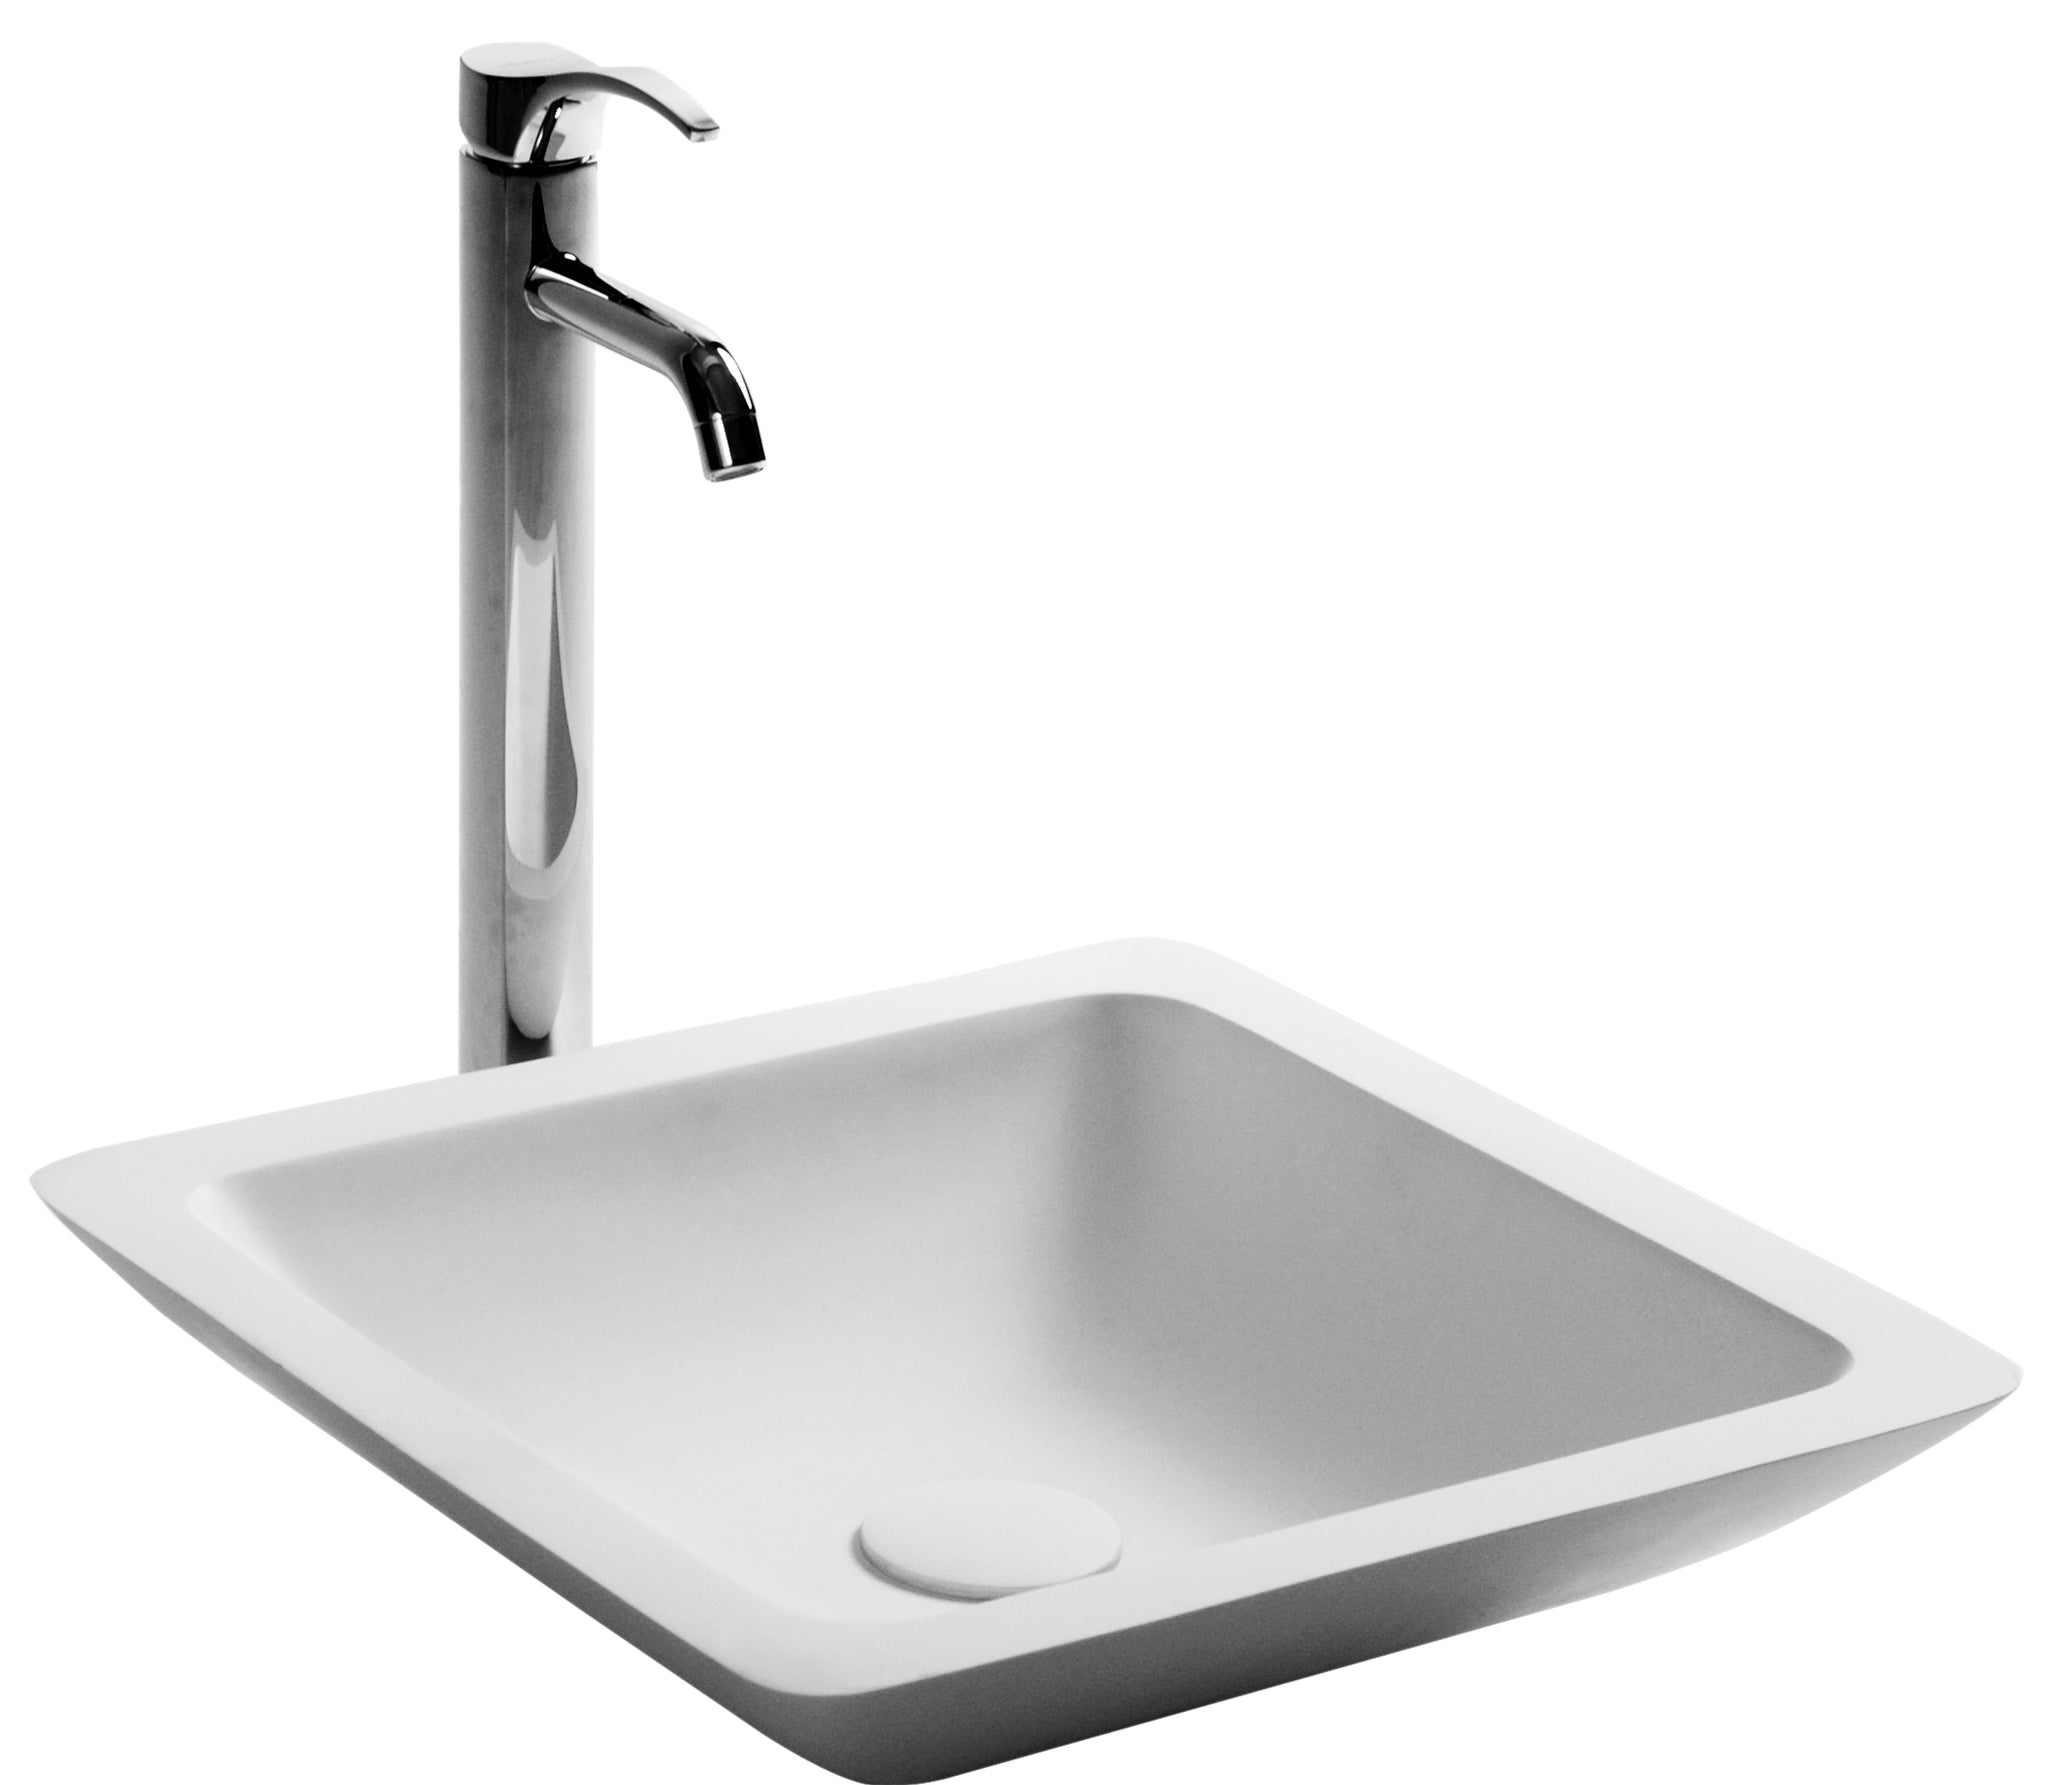 The Lindig True Solid Surface Sink Vessel